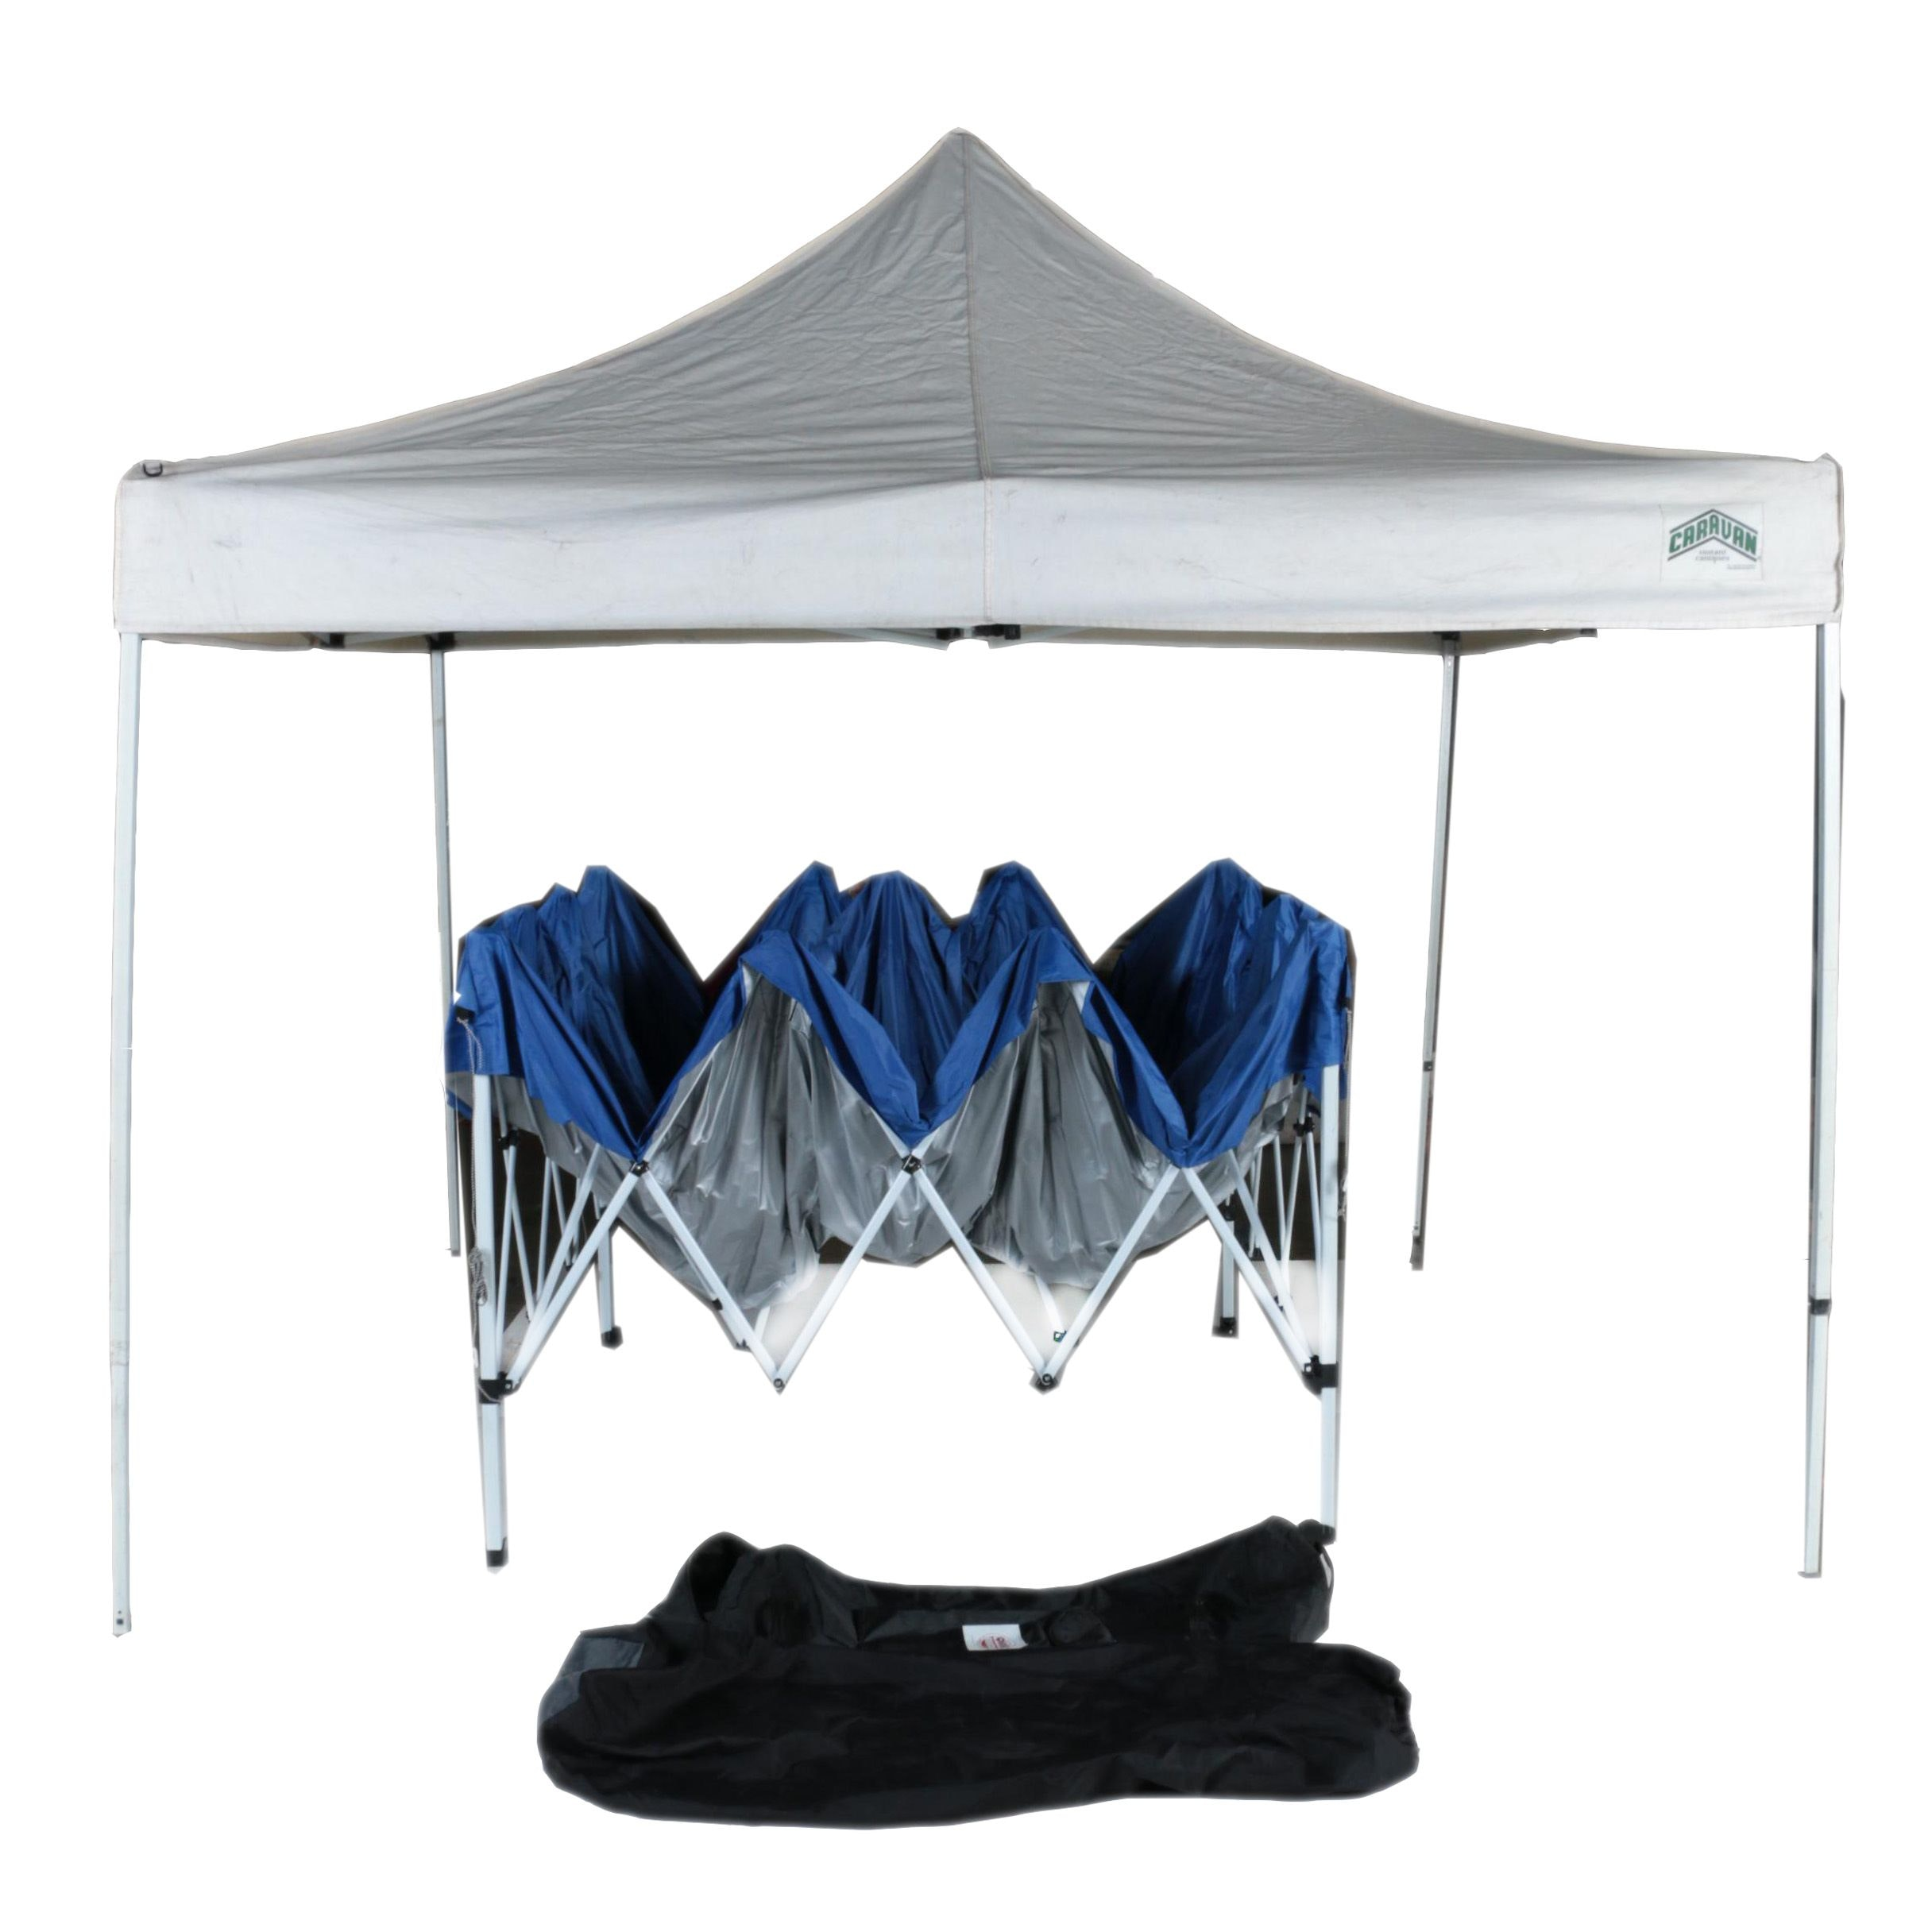 First-Up and E-Z Up Folding Instant Shelter Canopies